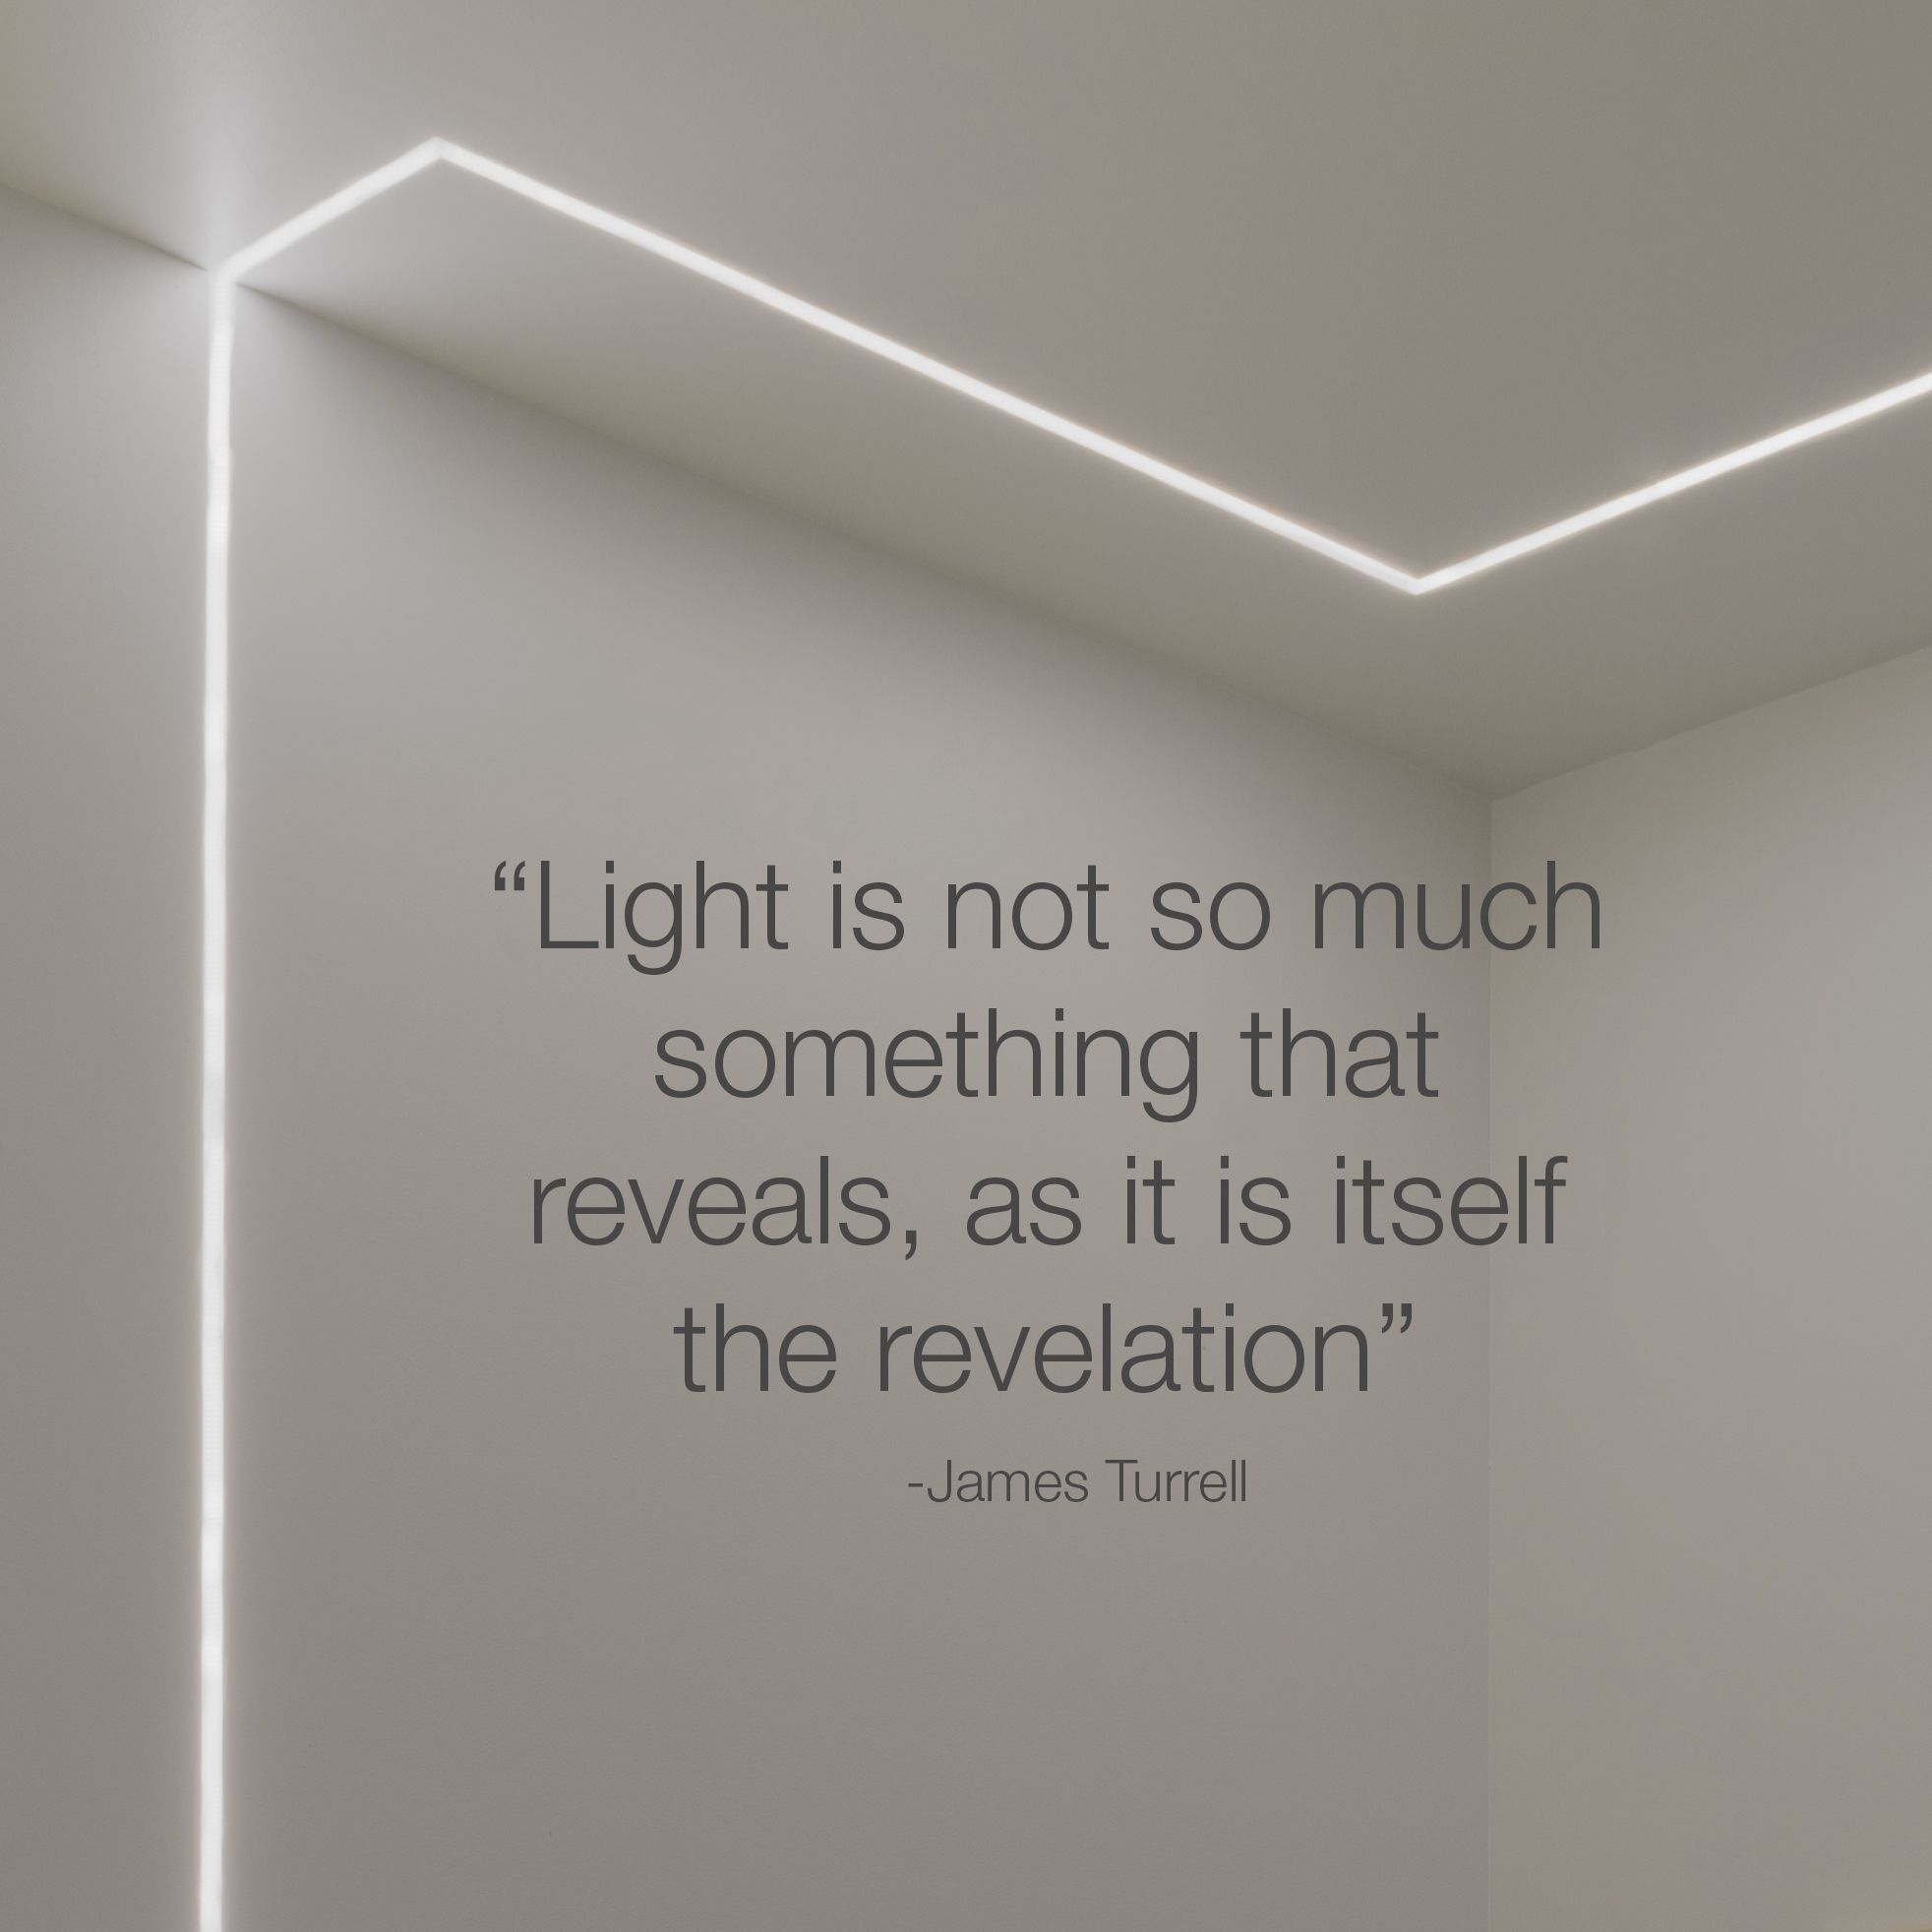 Light is not so much something that reveals, as it is itself the